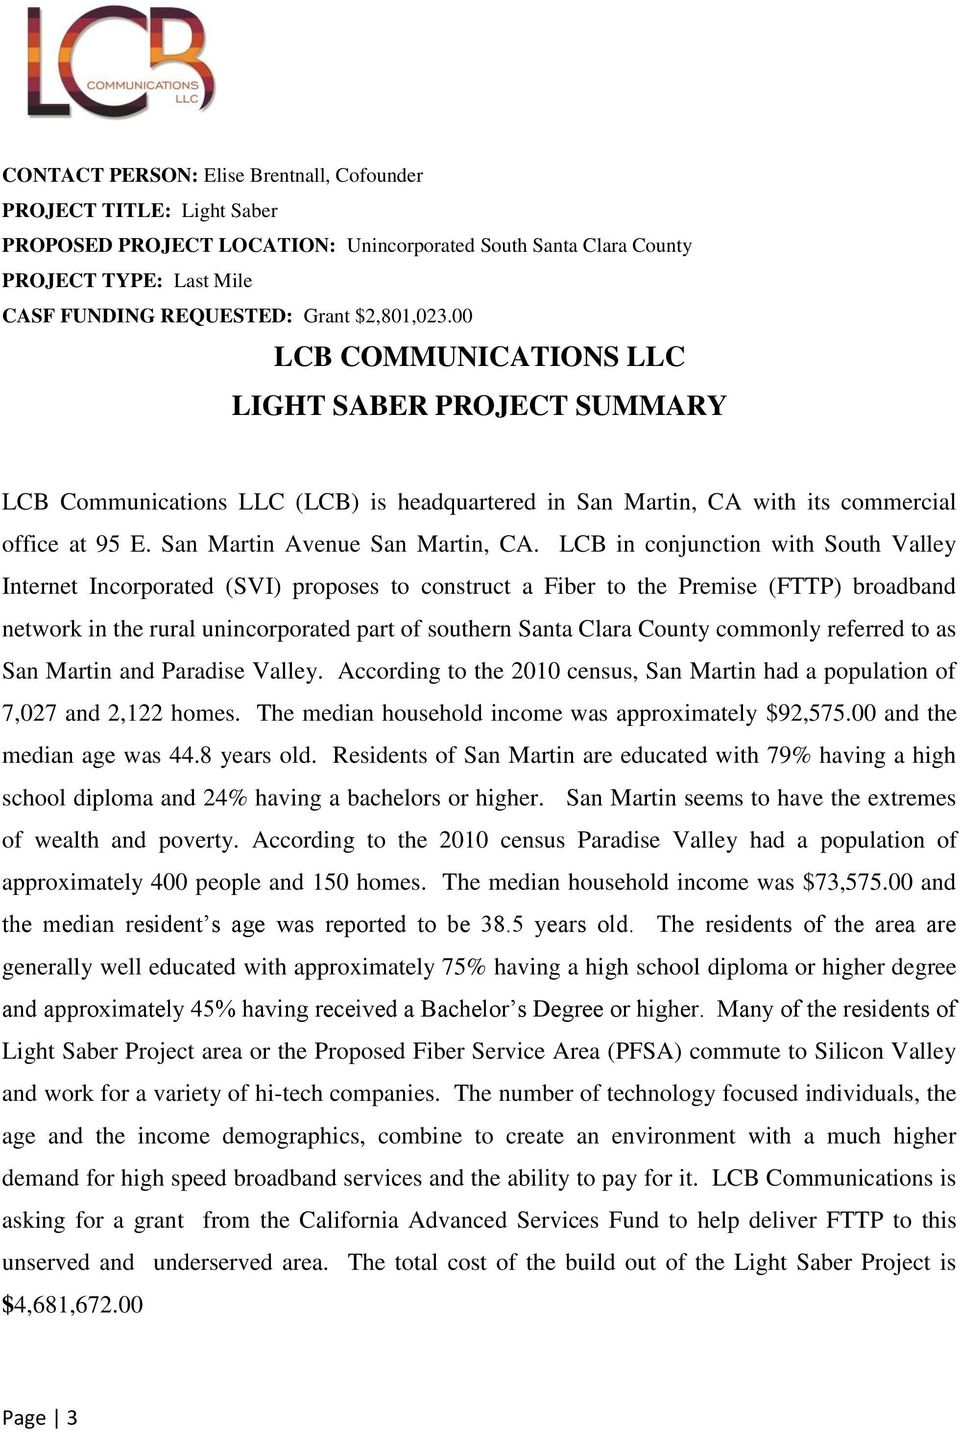 LCB in conjunction with South Valley Internet Incorporated (SVI) proposes to construct a Fiber to the Premise (FTTP) broadband network in the rural unincorporated part of southern Santa Clara County